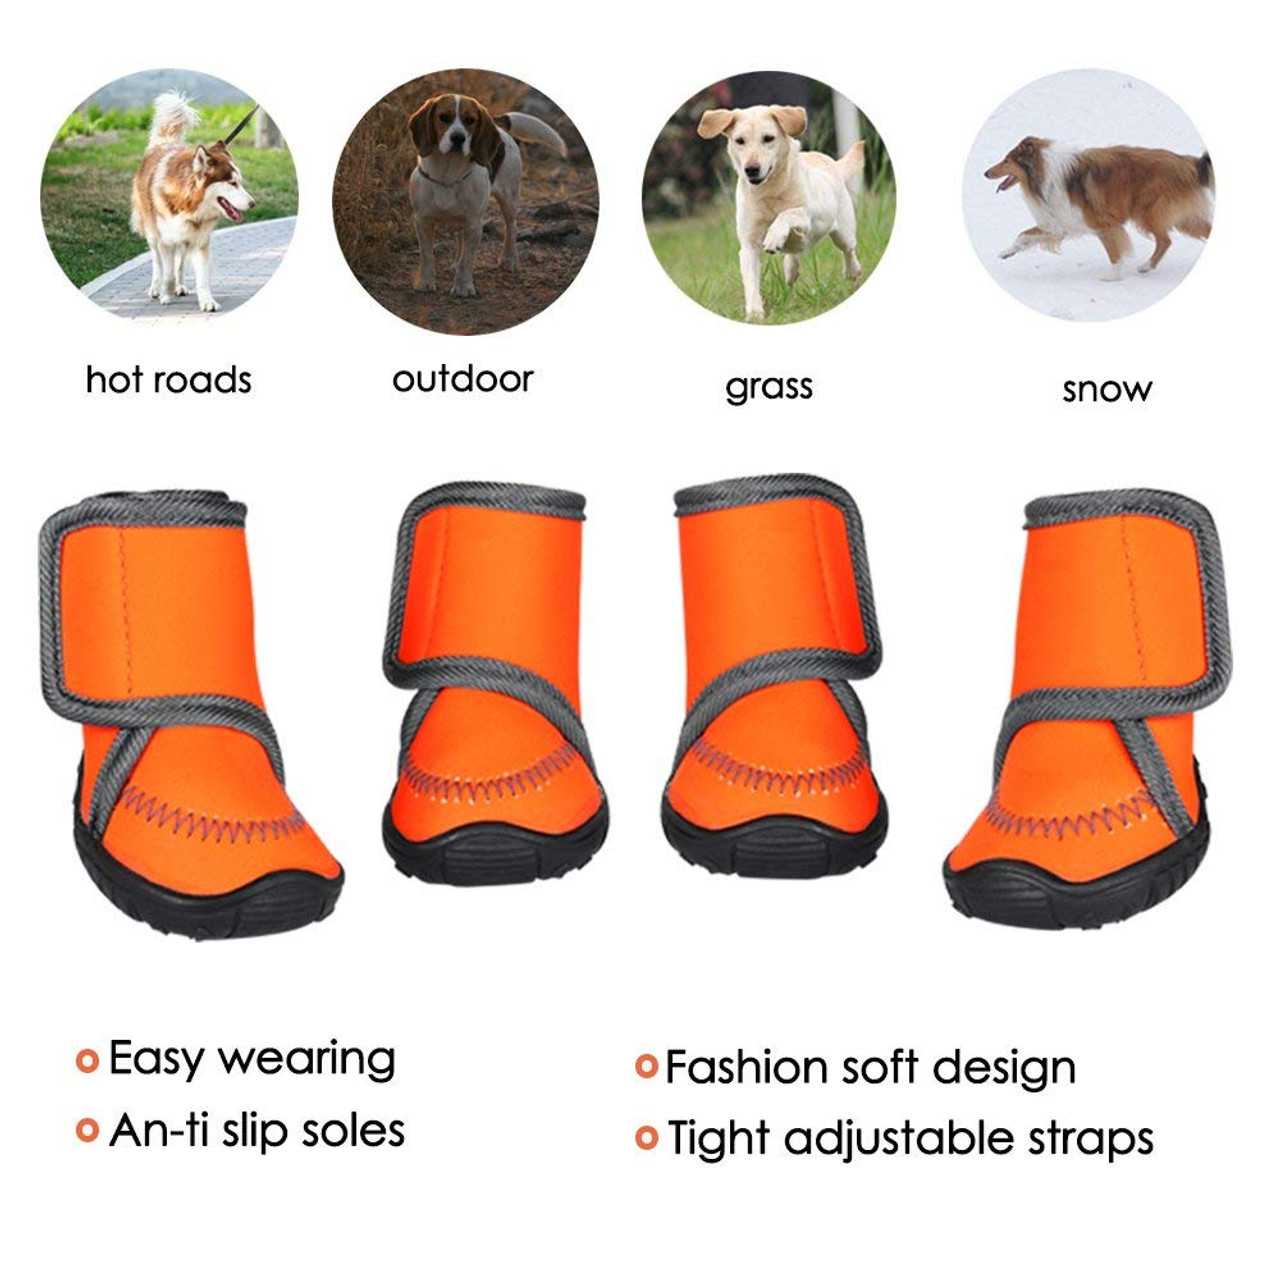 f5bdc8c5a80 Dog Shoes with Adjustable Straps Dog Boots Waterproof Paw Protectors